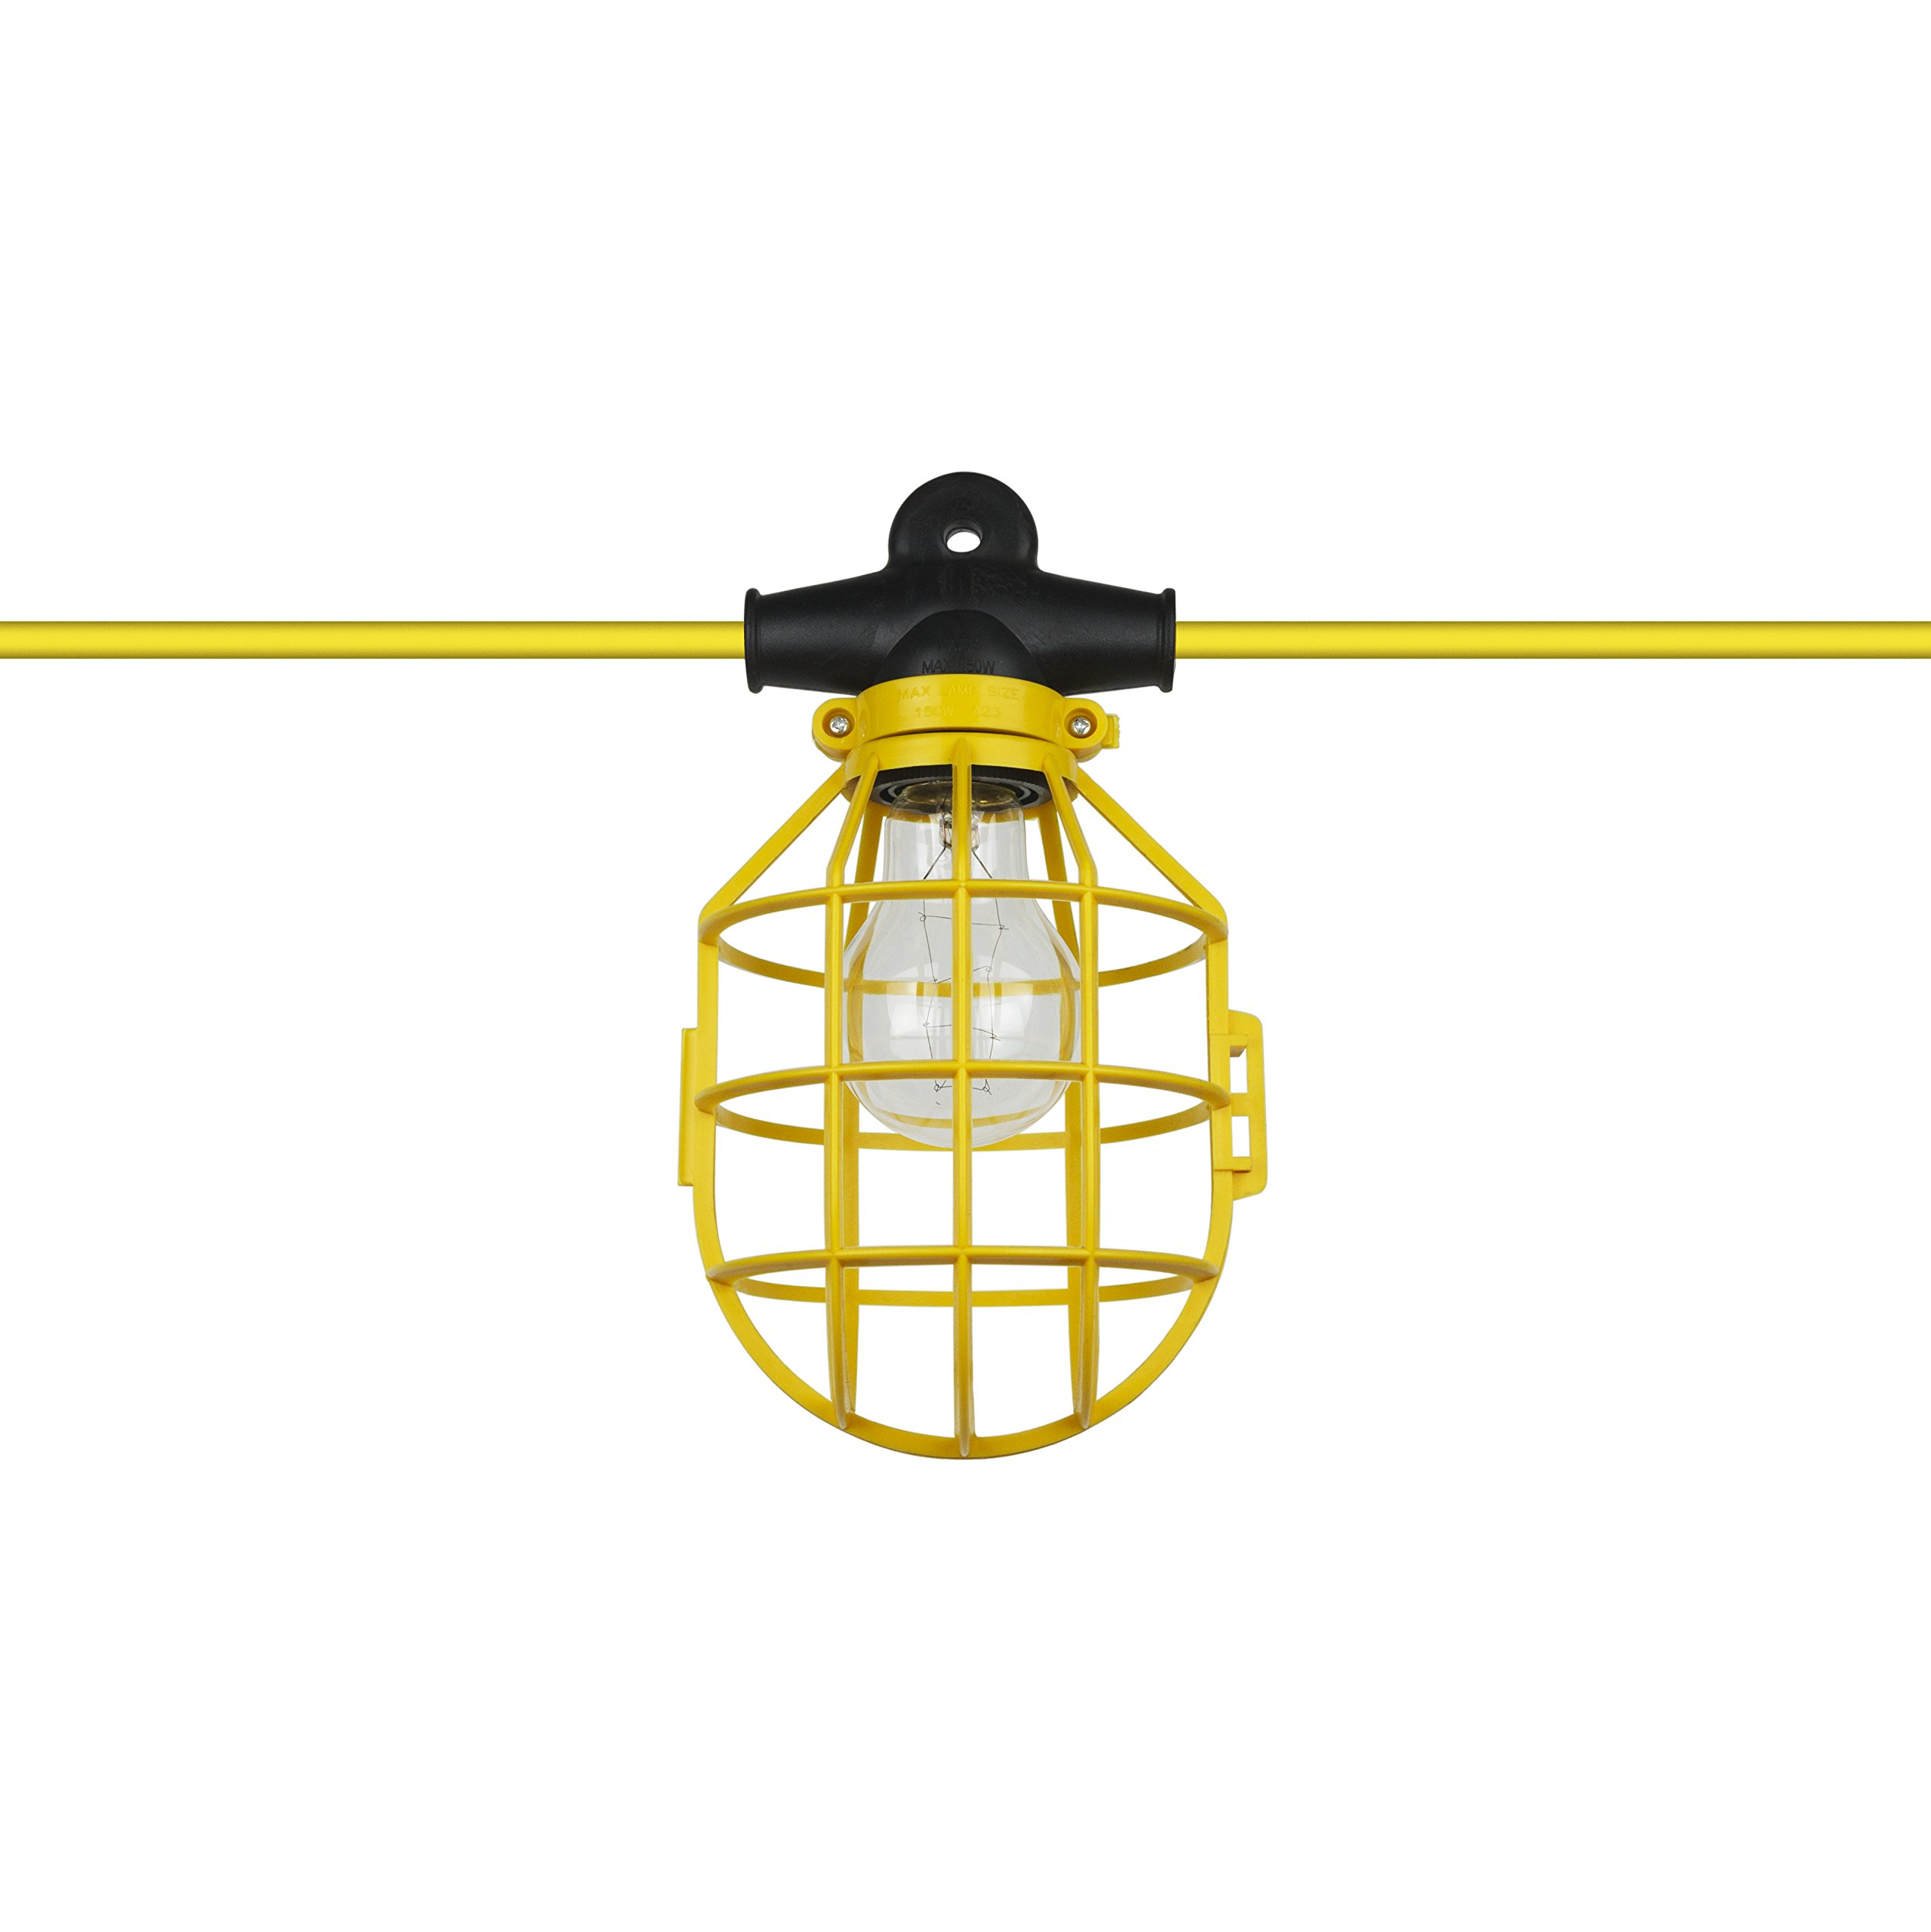 Sunlite EX50-14/2/SL 50 foot 5 bulb Incandescent Temporary Portable String Work Light Lighting, Yellow